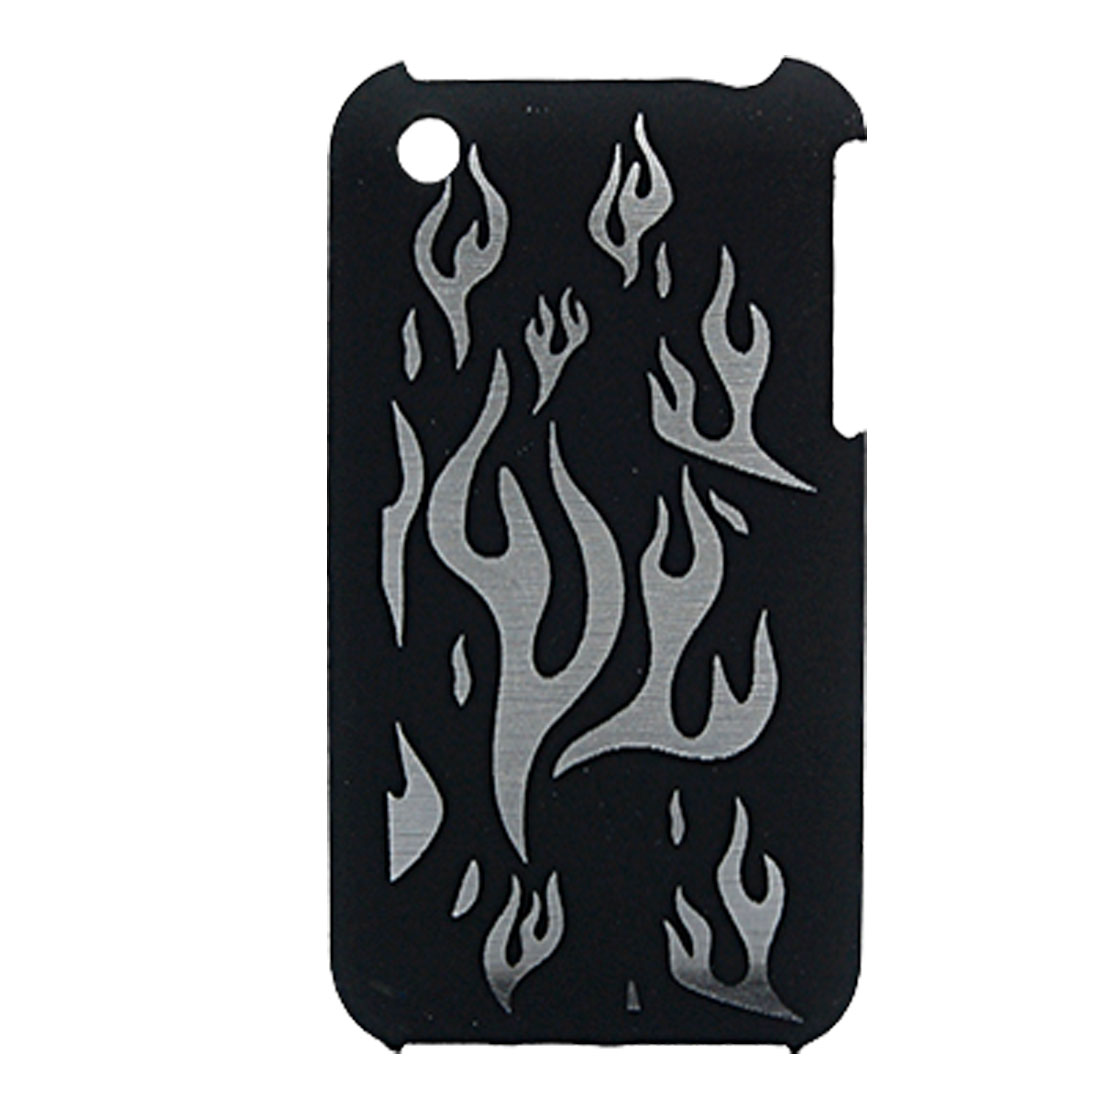 Carved Fire Style Hard Case Cover Skin for iPhone 3G / 3GS Black